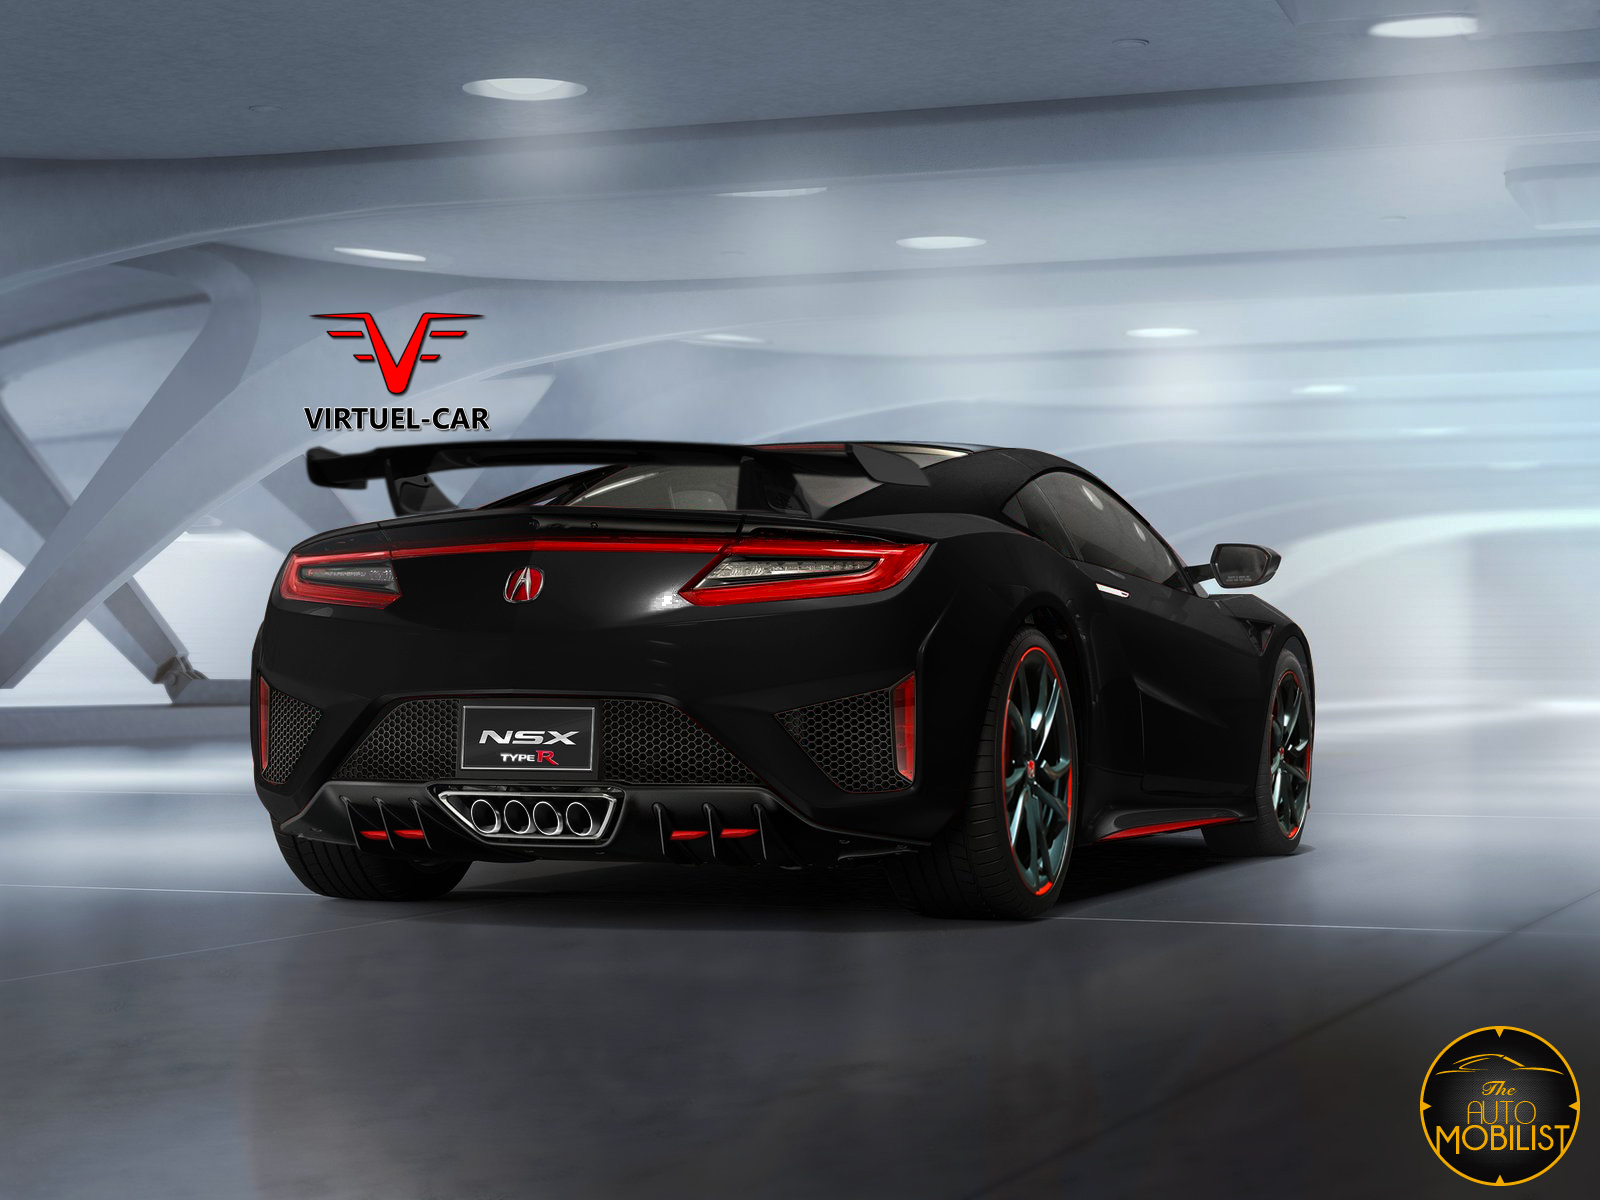 What About This New Acura / Honda NSX Type R Render?